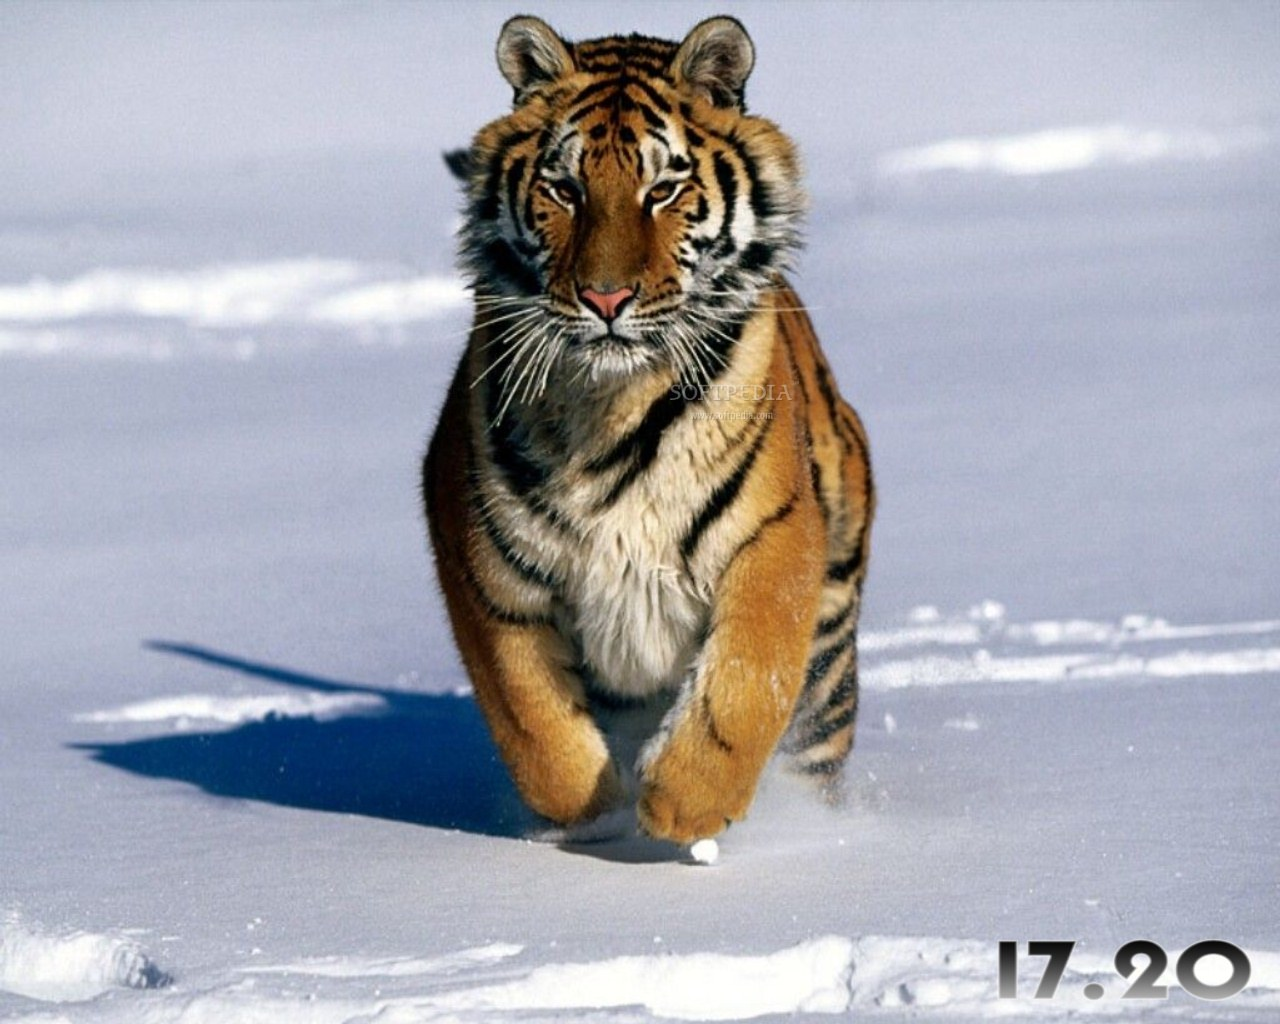 Behavioral Adaptations of a Tiger This Tiger is Adapted to